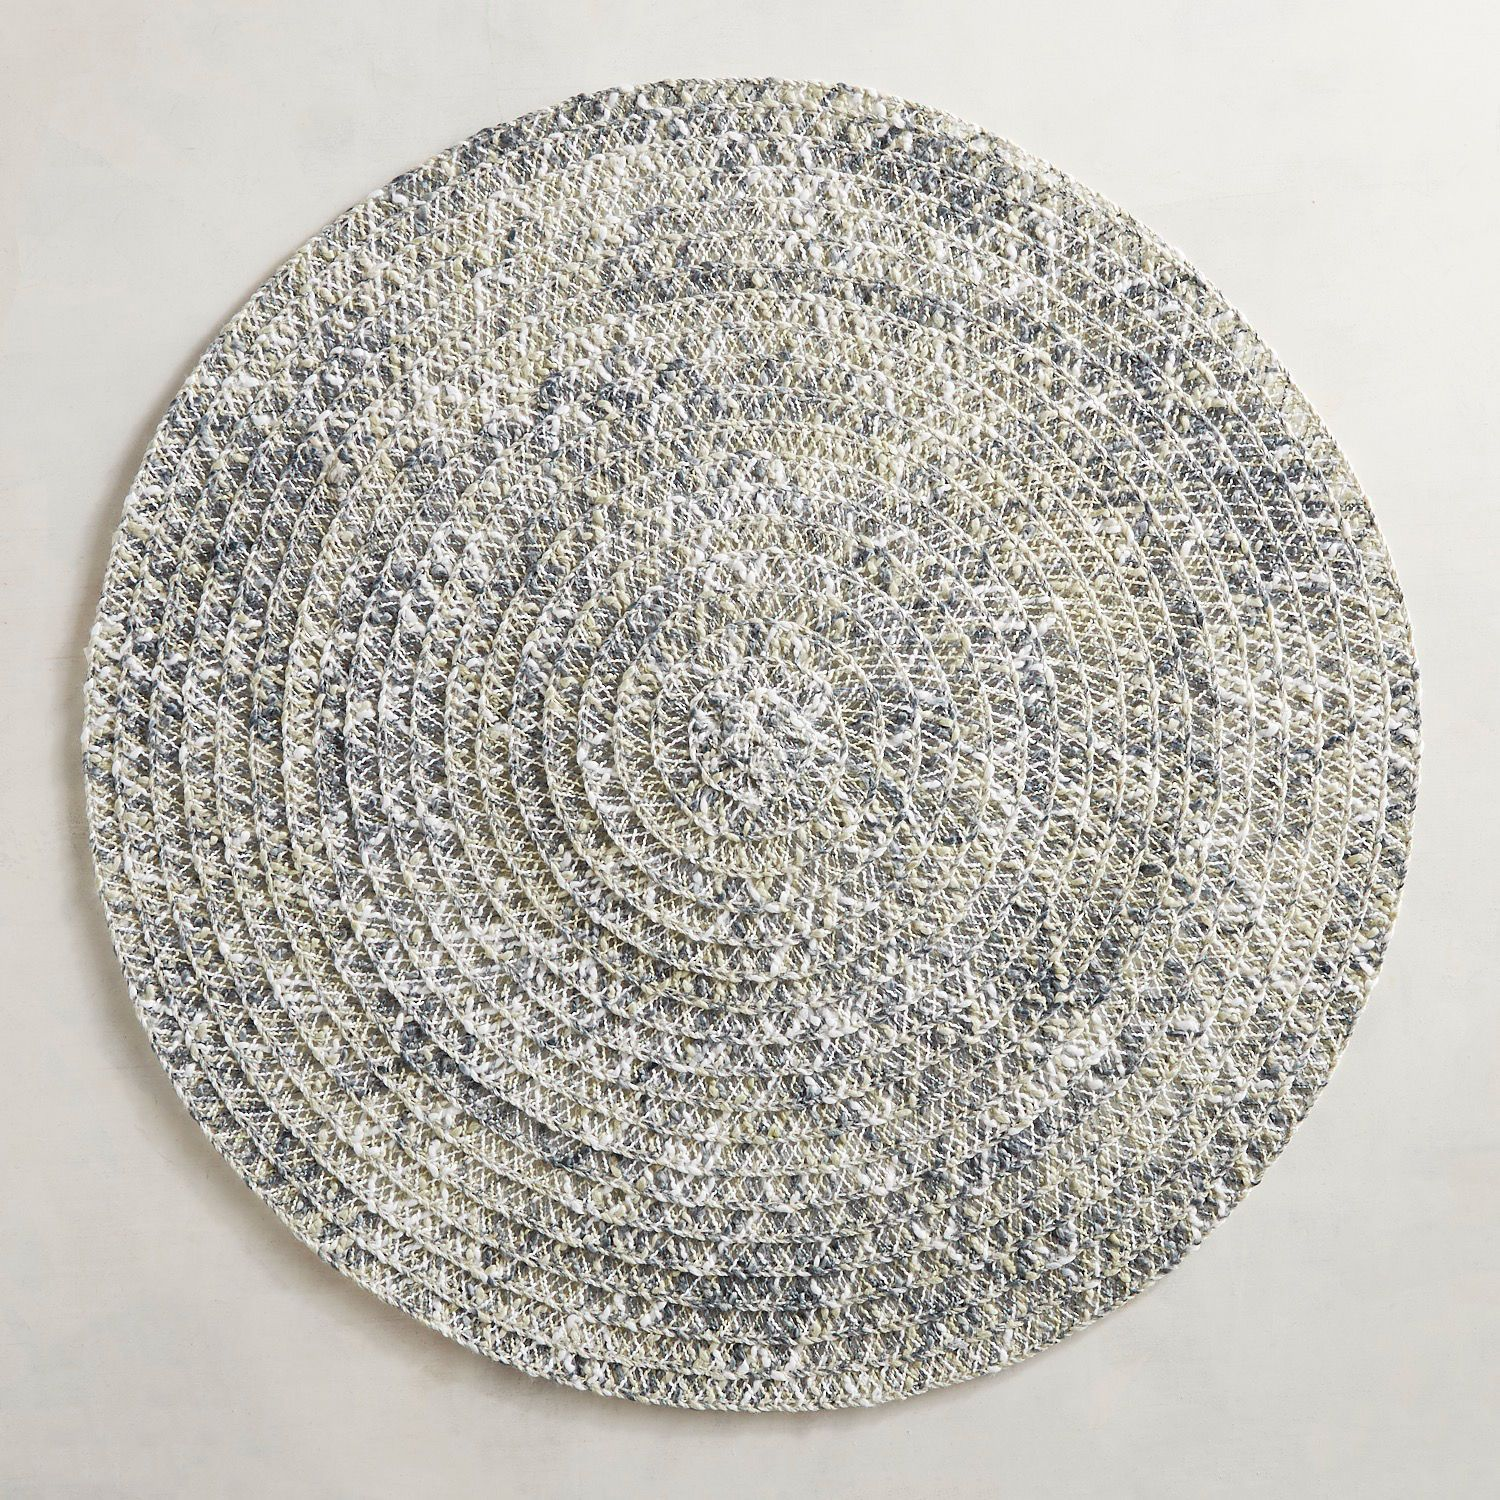 Woven Gray Blue Round Placemat Pier 1 Imports Modern Placemats Placemats Blue Gray Bedroom